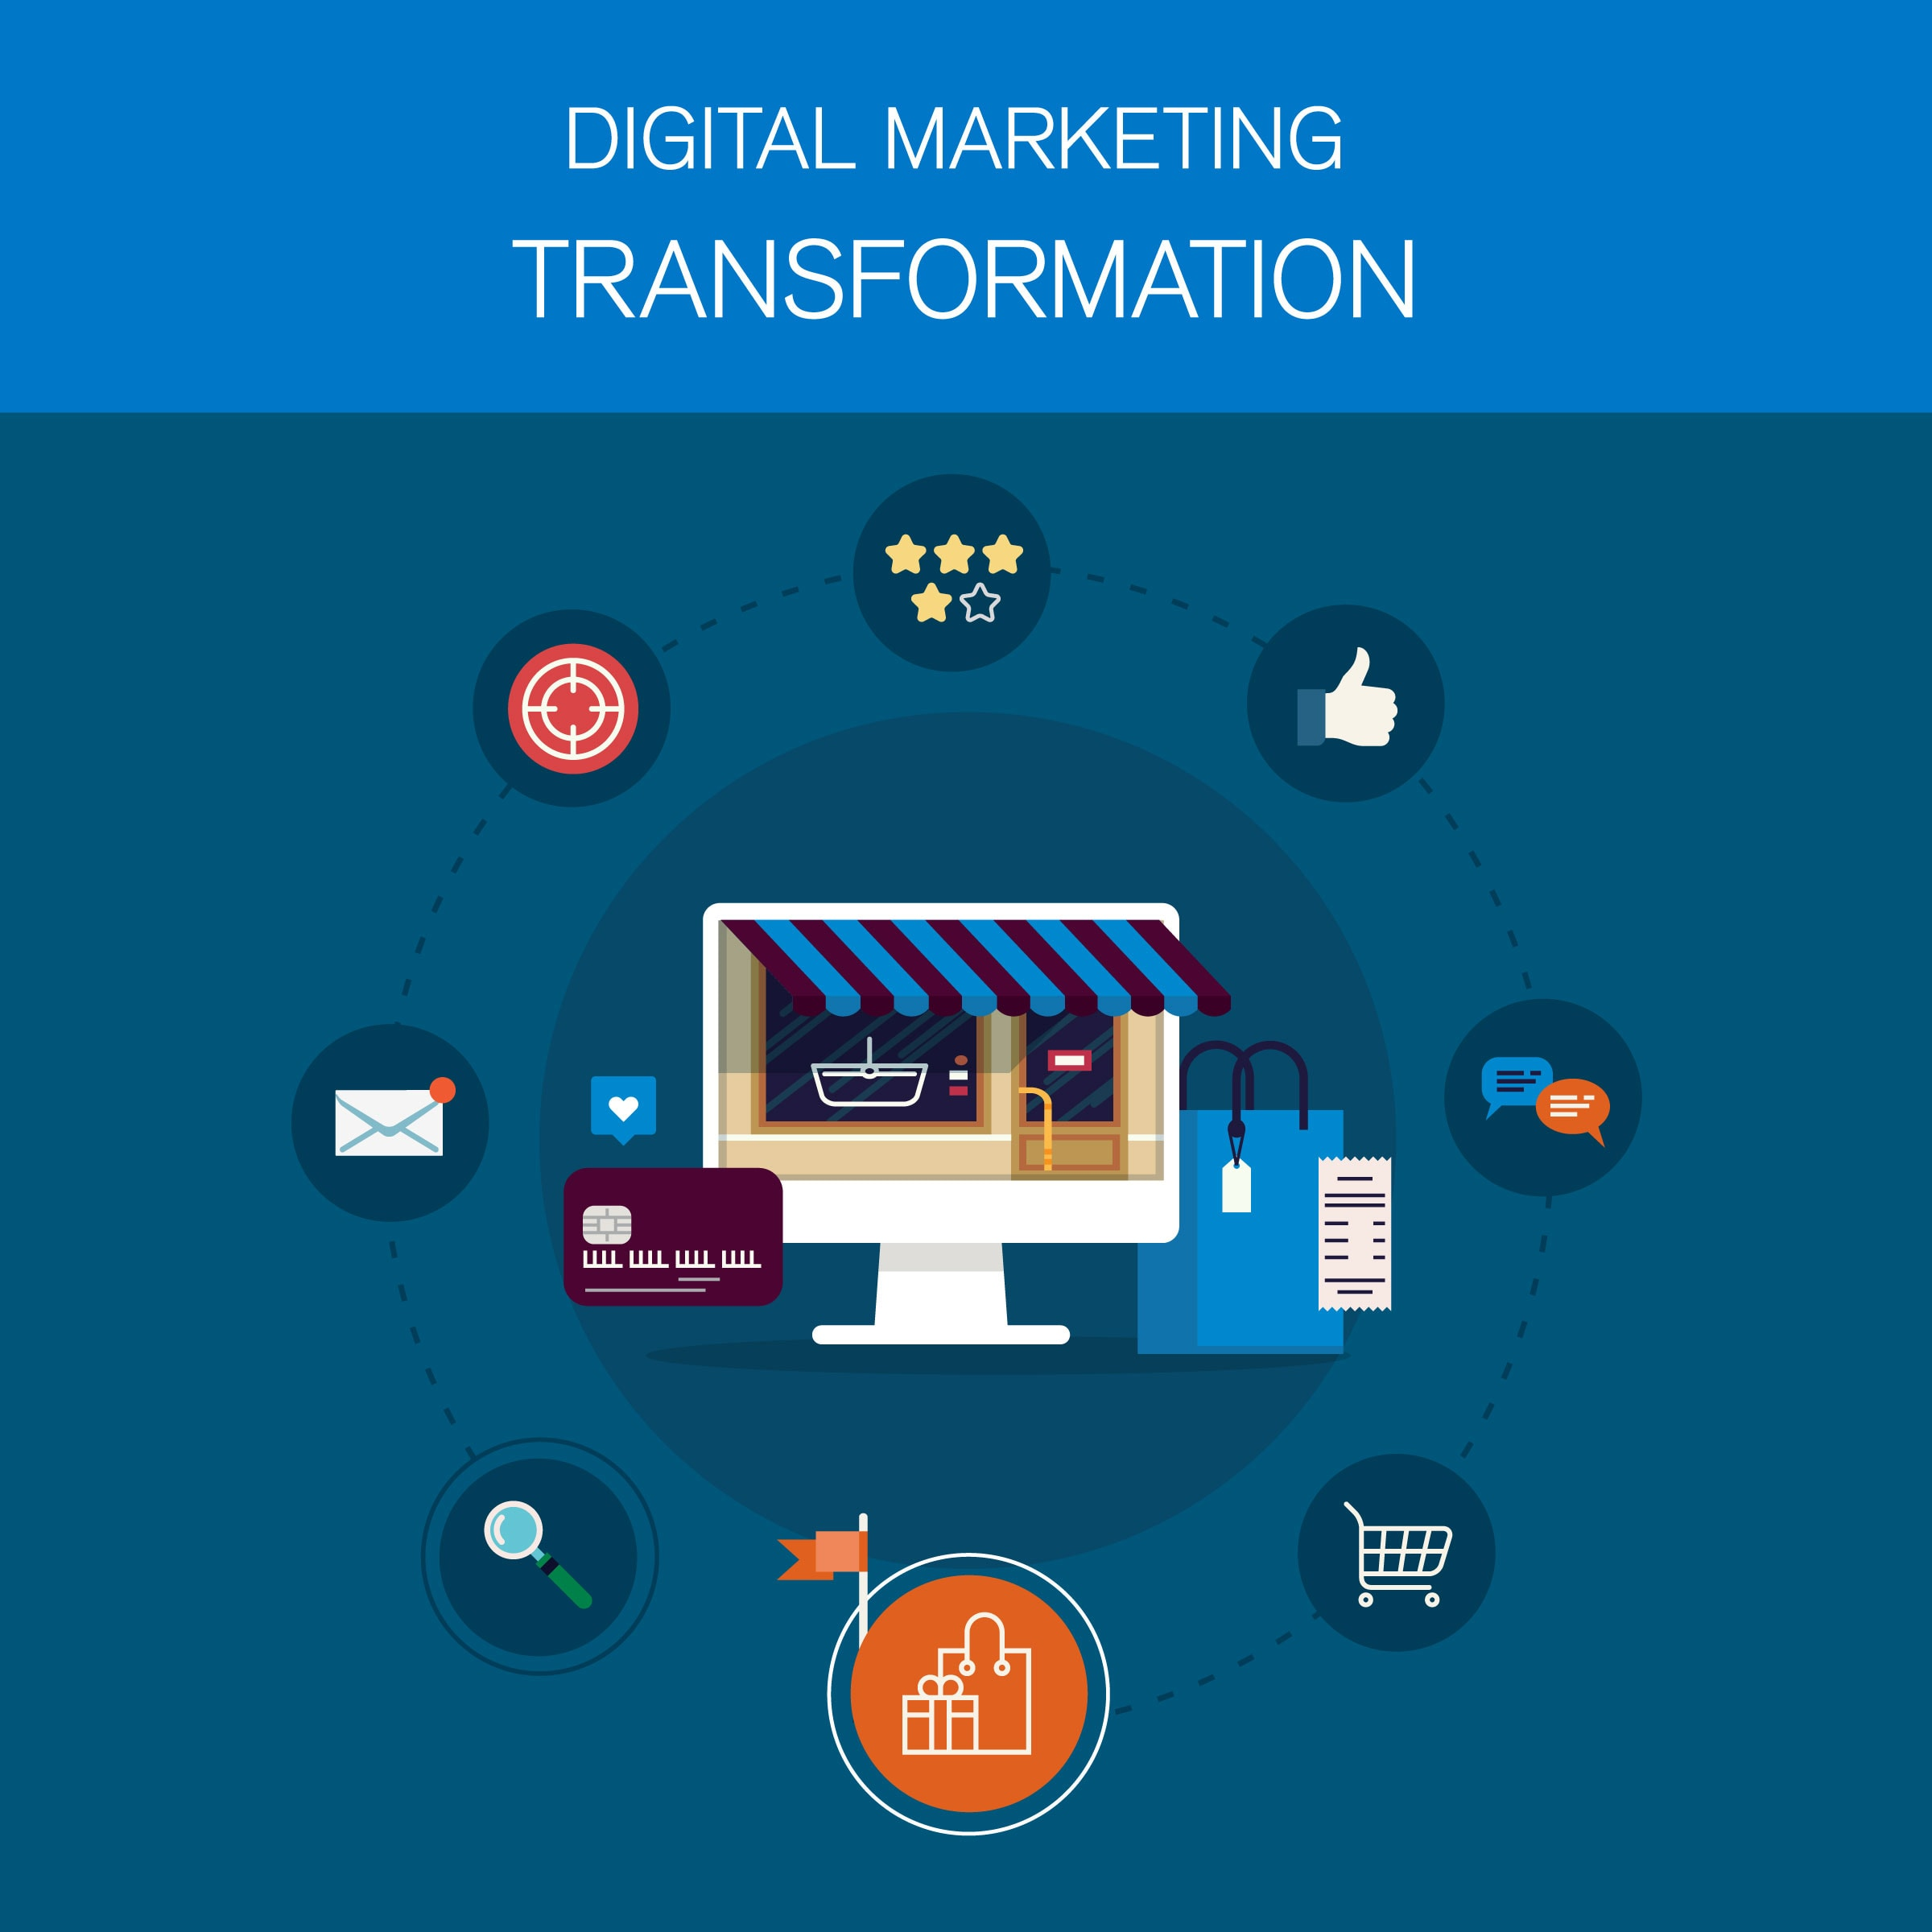 The Digital Marketing Transformation Cycle